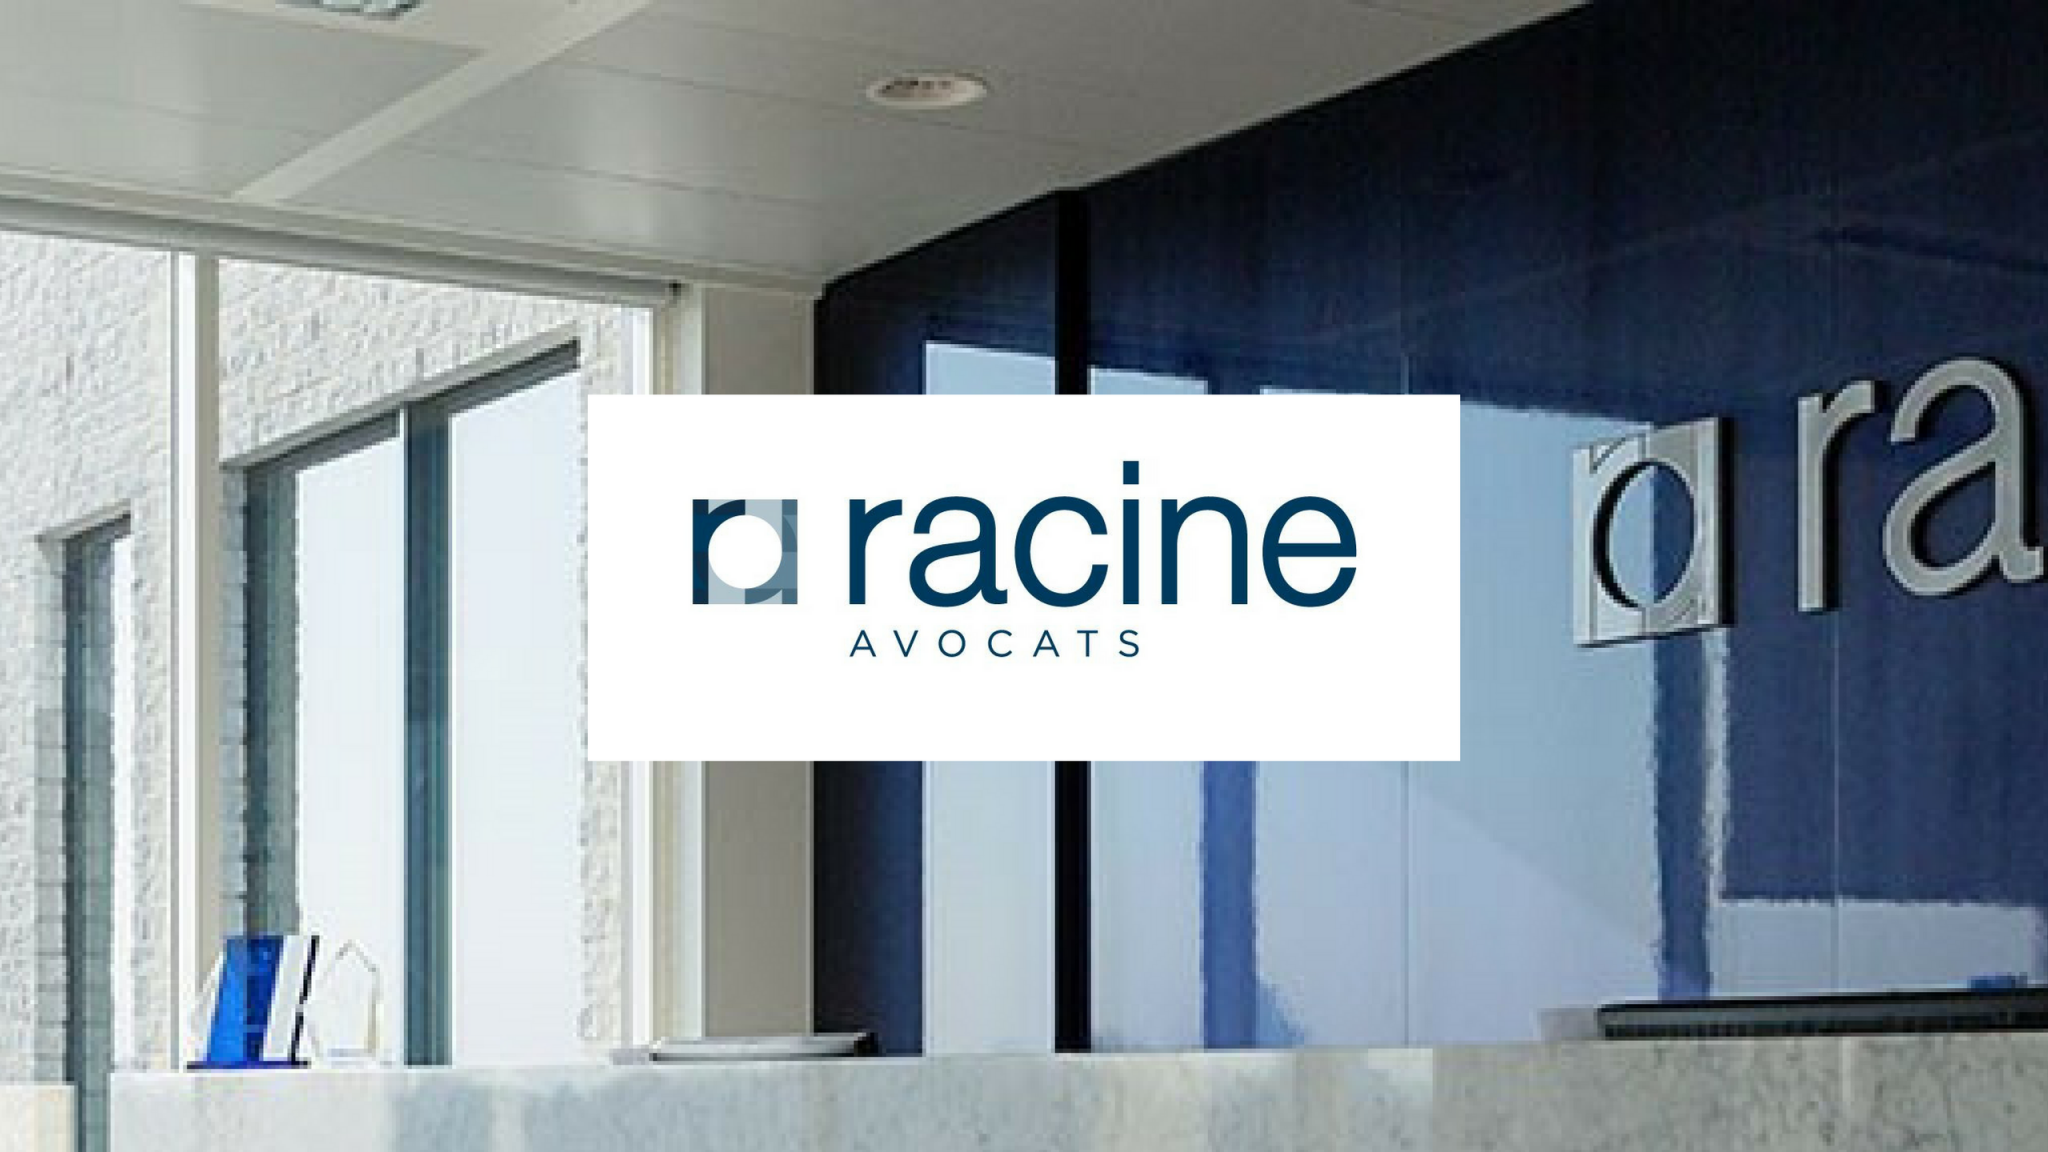 Racine Avocats Best Legal Law Firms in the World UpSlide